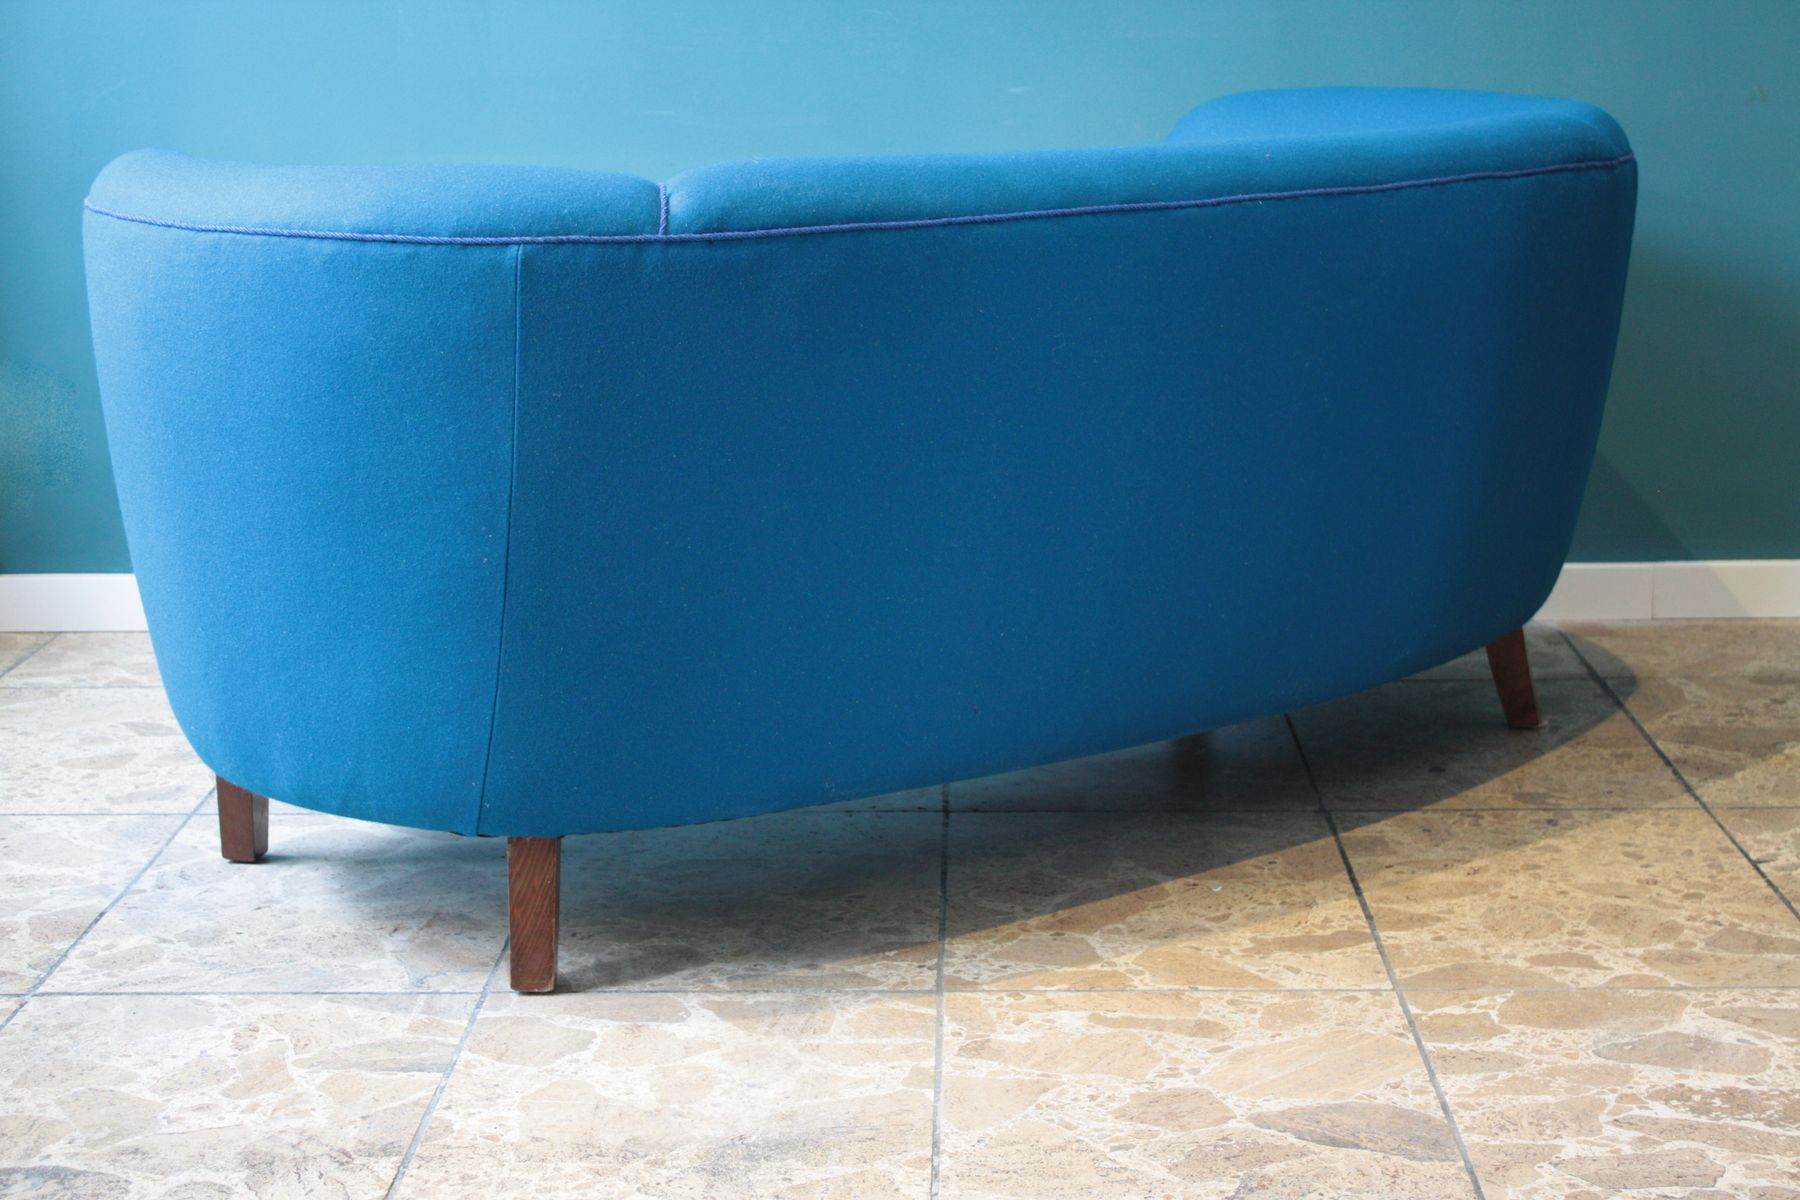 Blue Danish Banana Shaped Sofa 1940s For Sale At Pamono